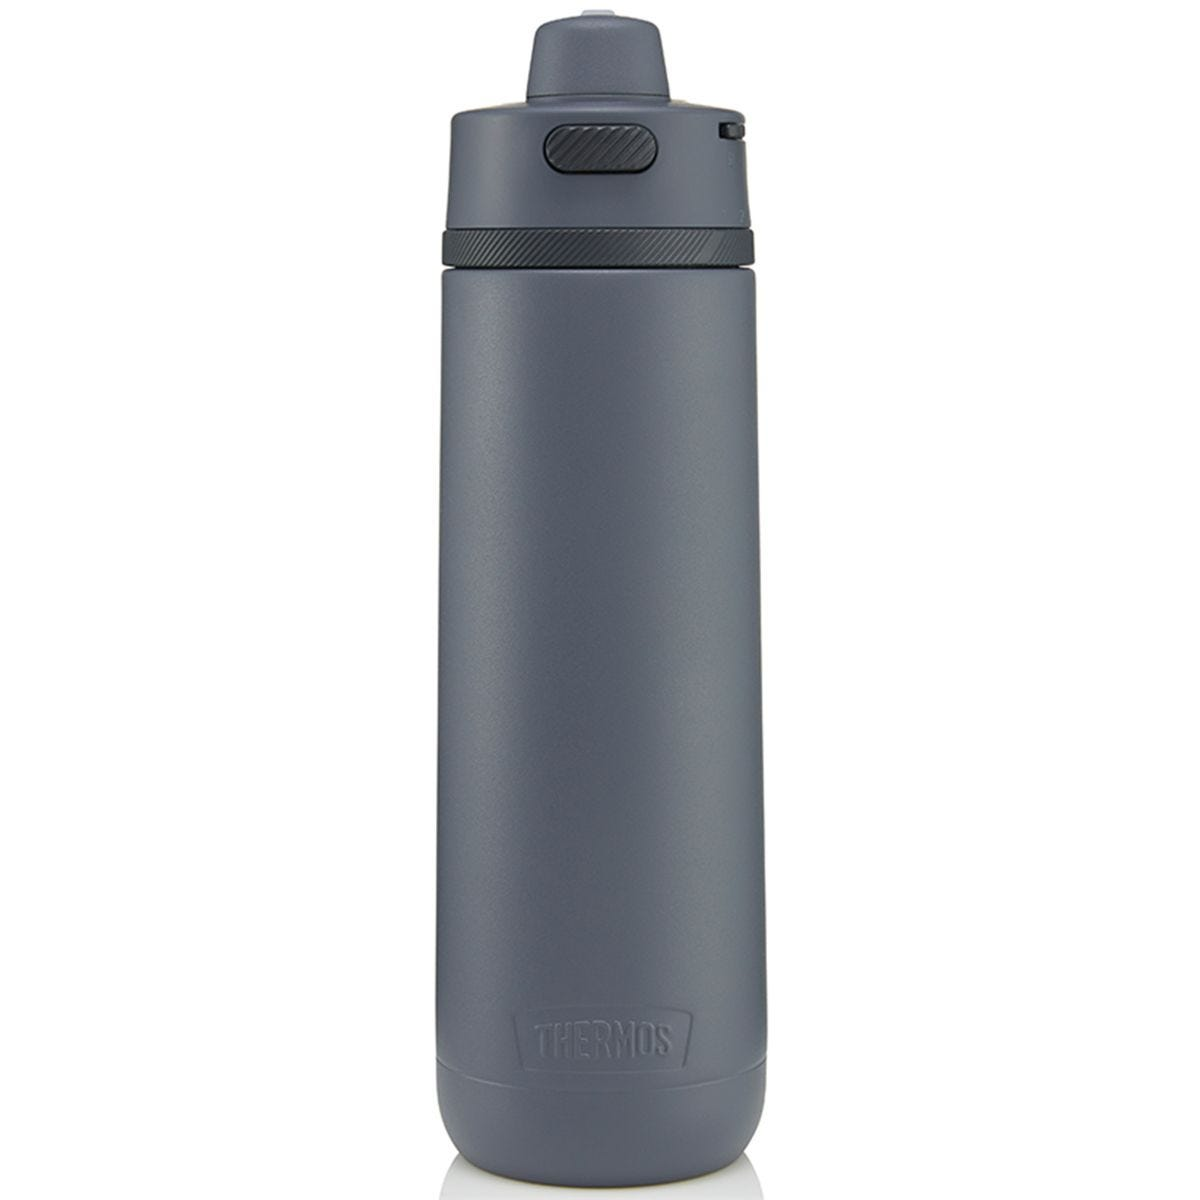 Thermos Guardian Stainless Steel Hydration Bottle 710ml - Blue